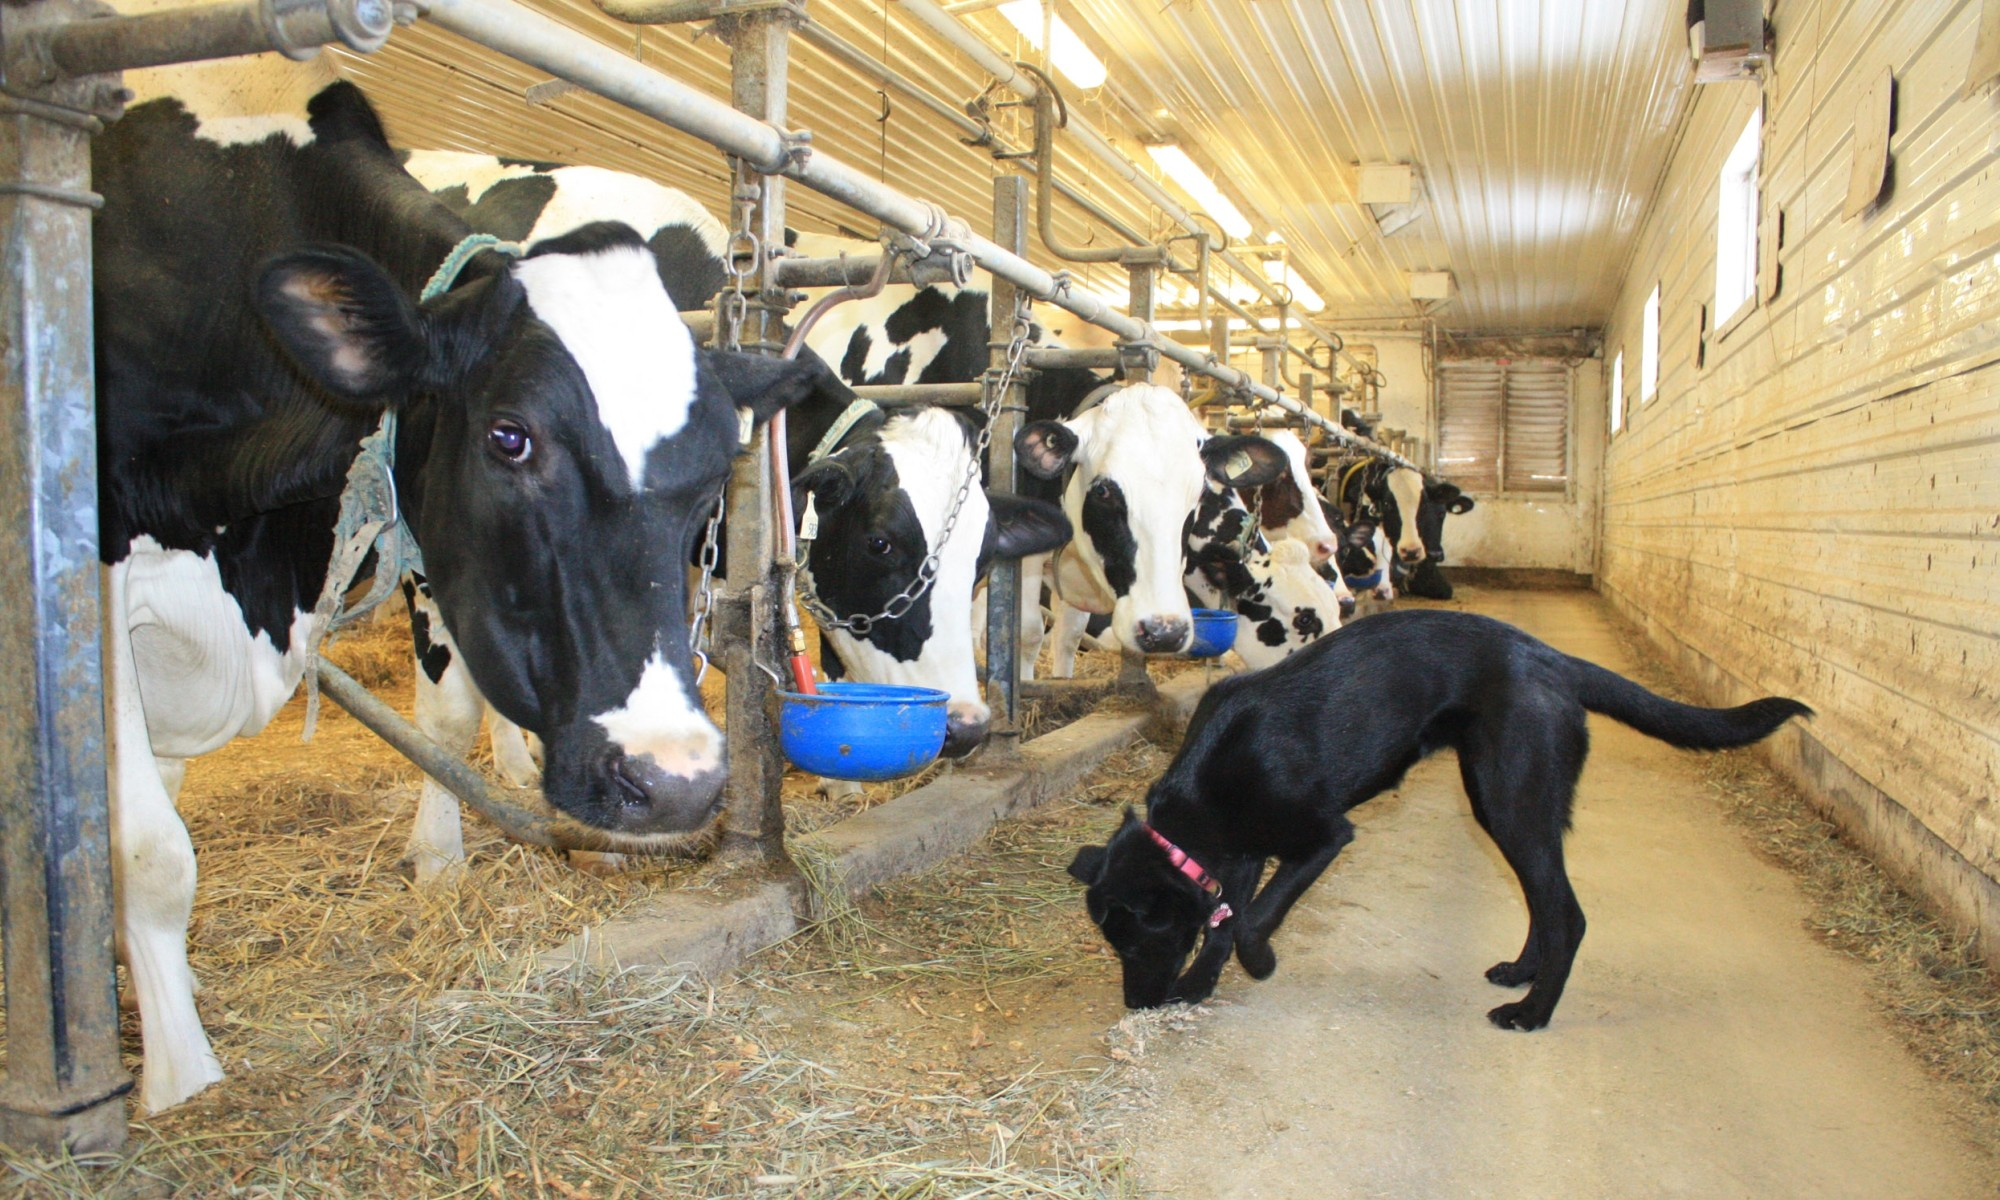 June, the farm dog supervising the cows